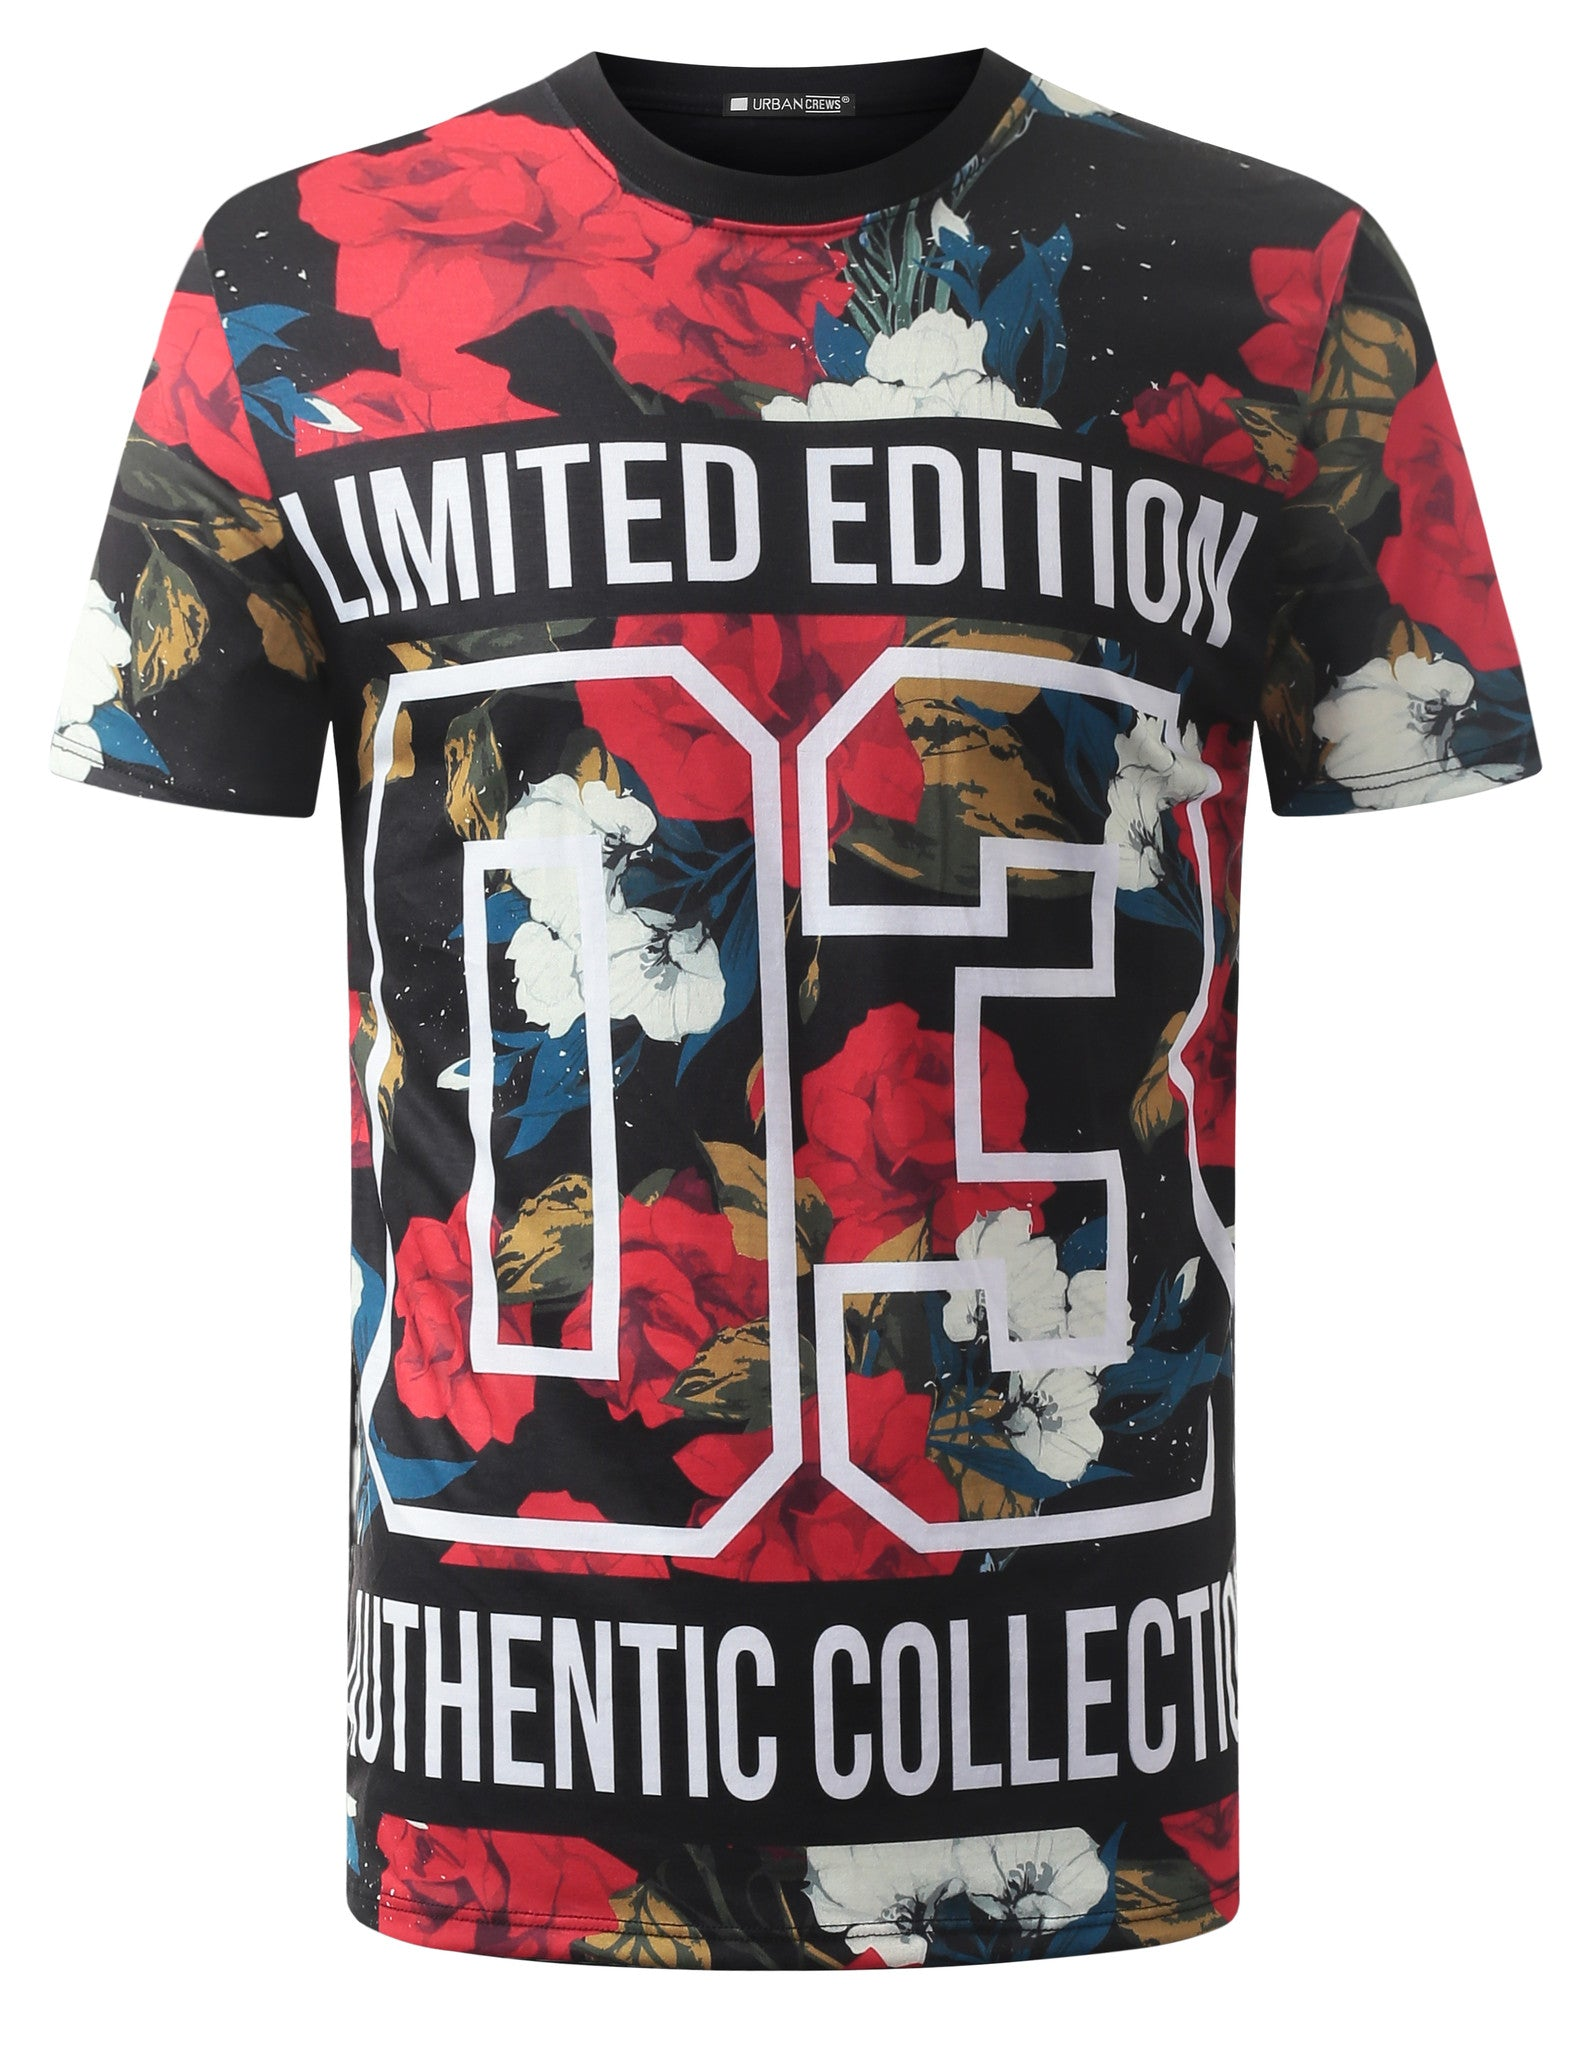 BLACK Limited Edition Floral Crewneck Tshirt - URBANCREWS